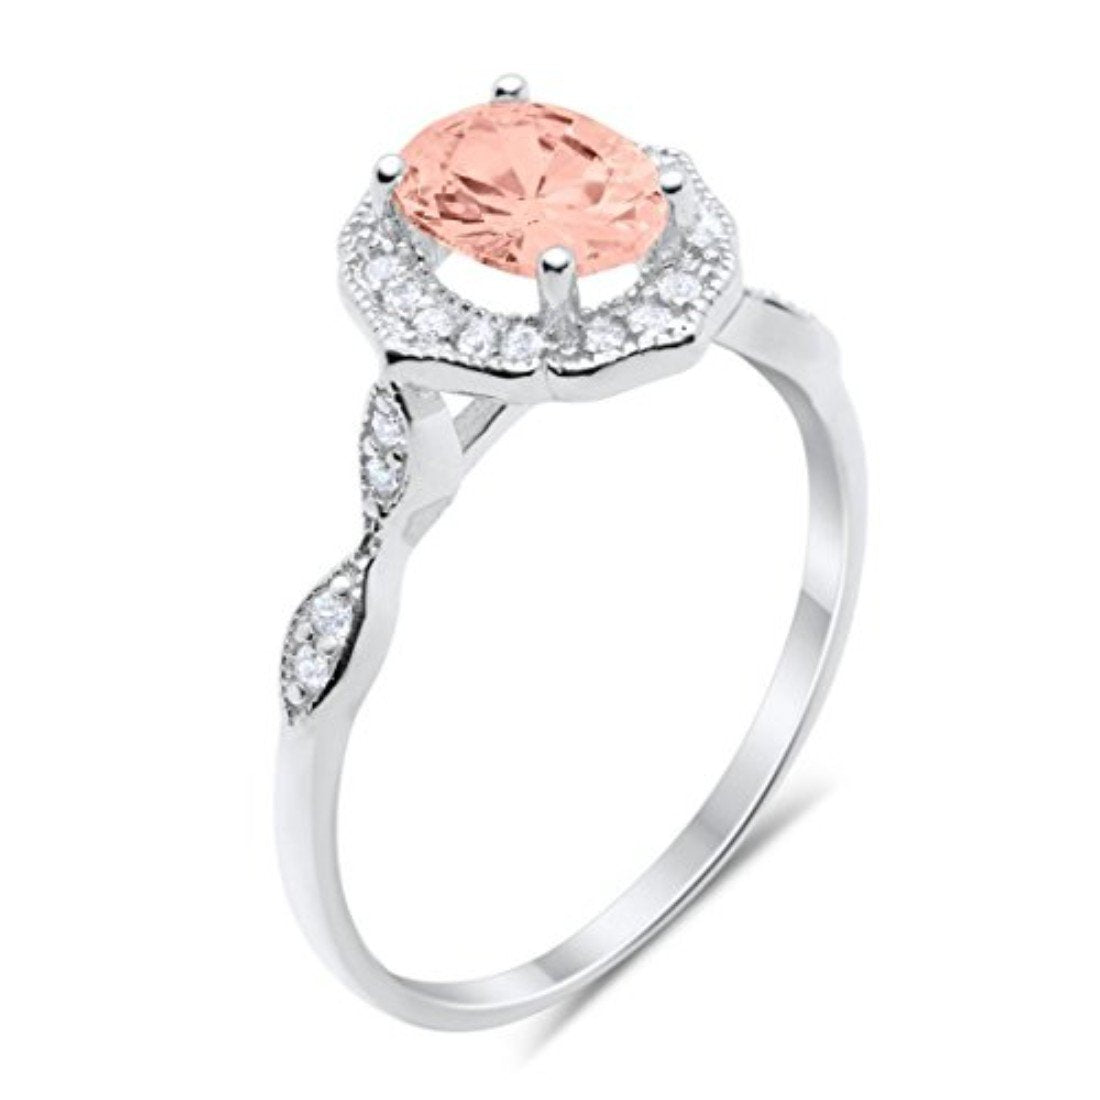 Art Deco Wedding Ring Oval Simulated Morganite CZ 925 Sterling Silver